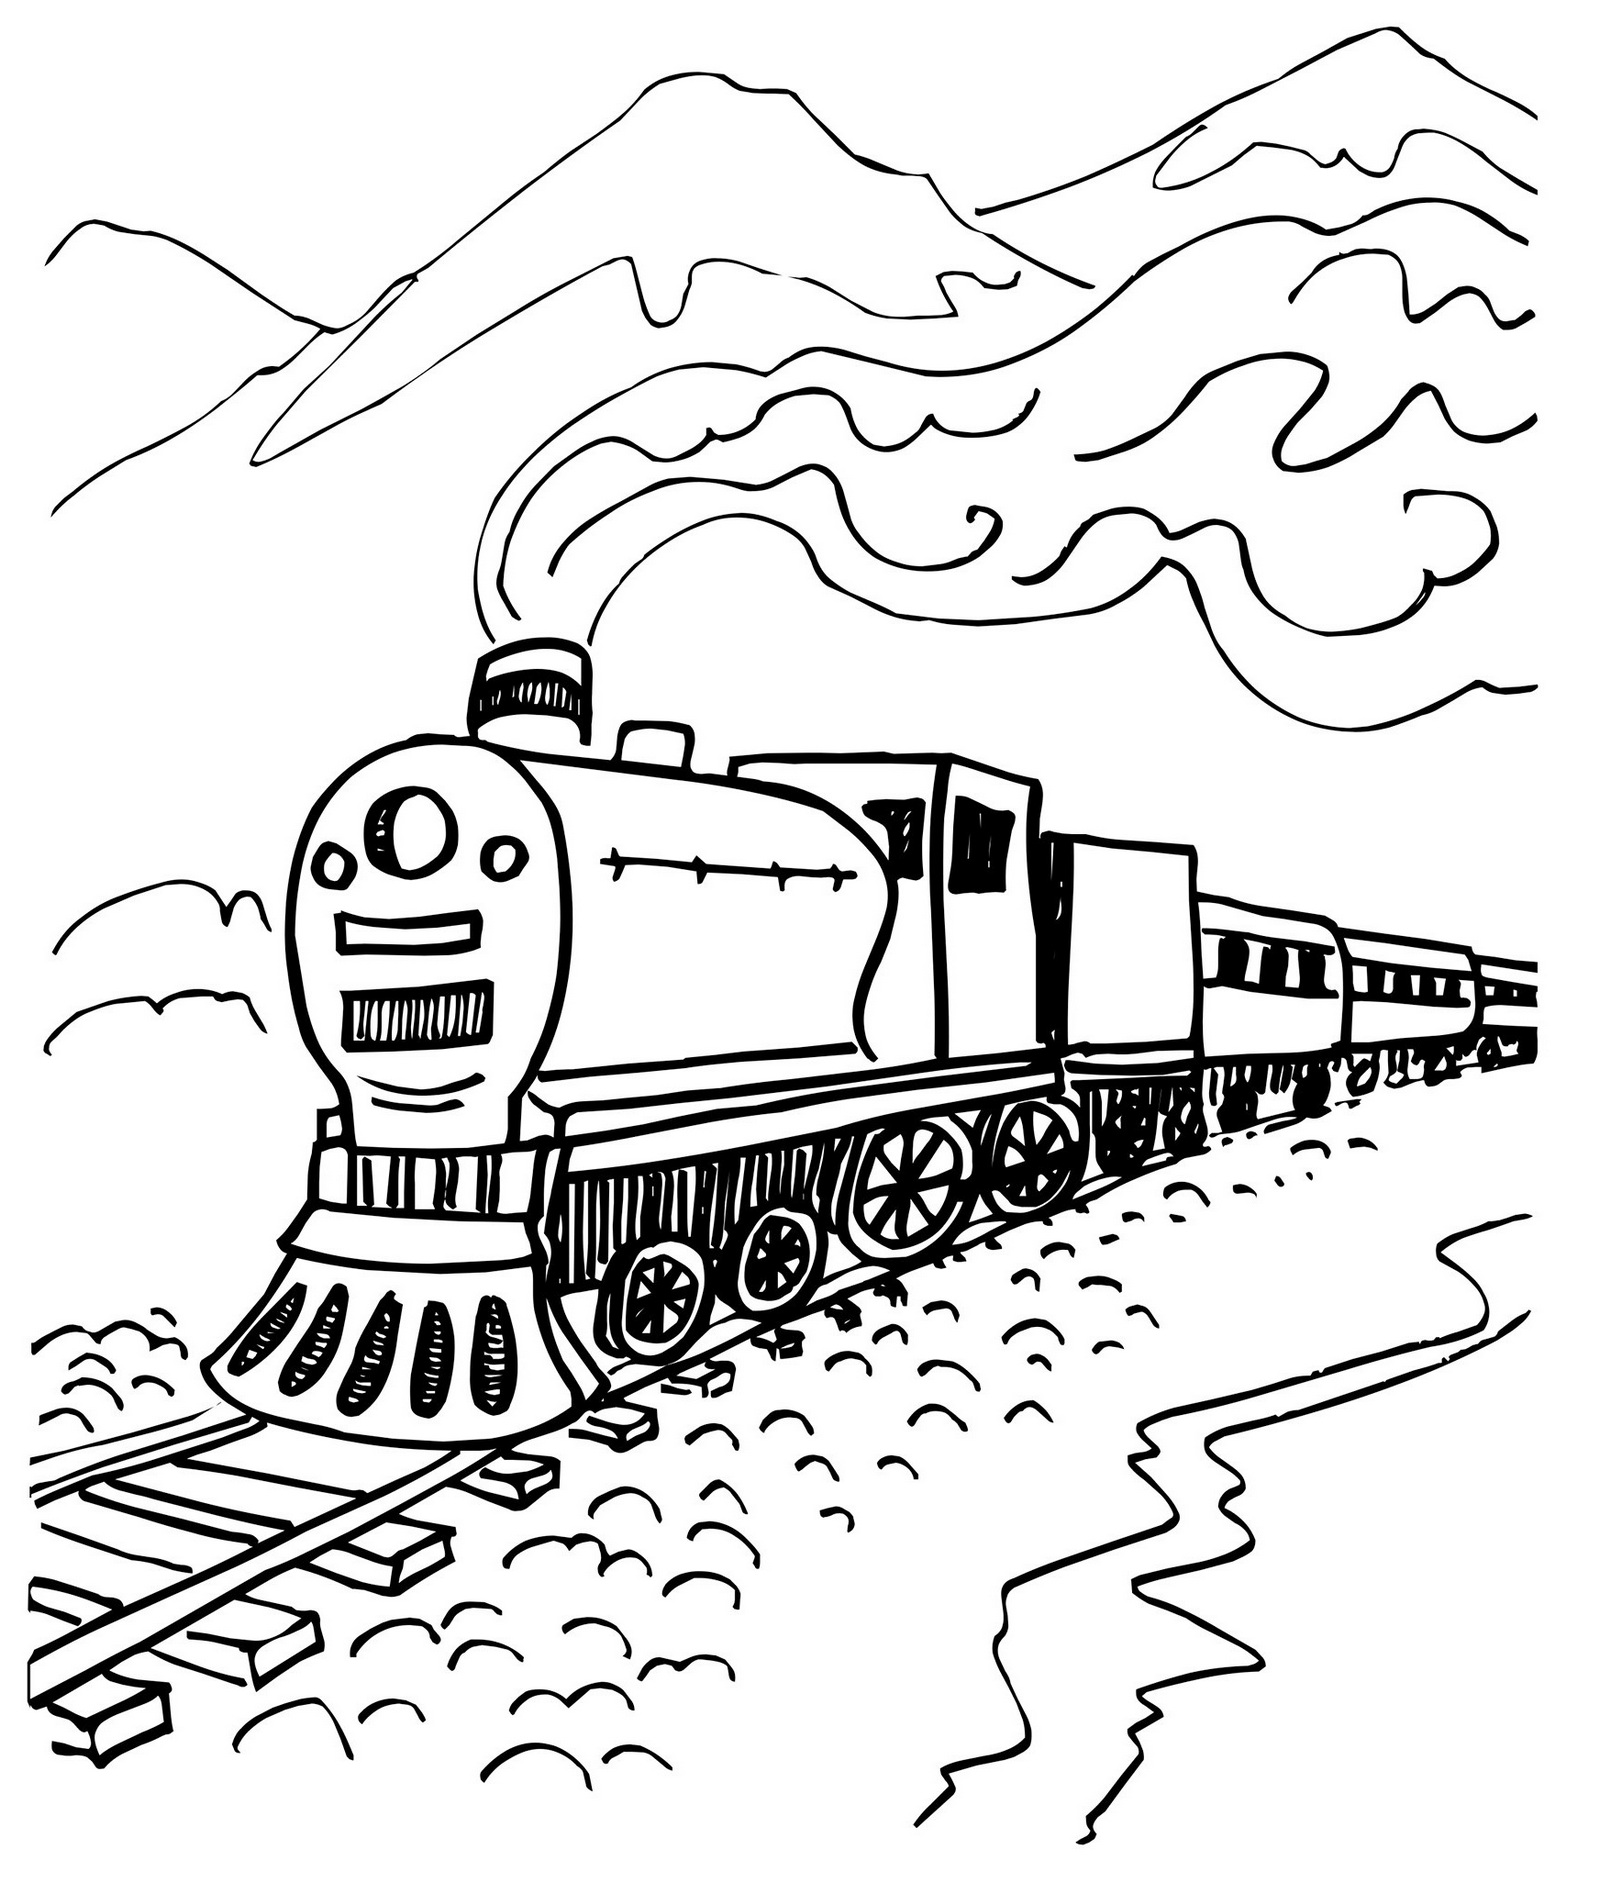 printable steam train coloring pages long smoke of steam train coloring page netart train steam pages coloring printable